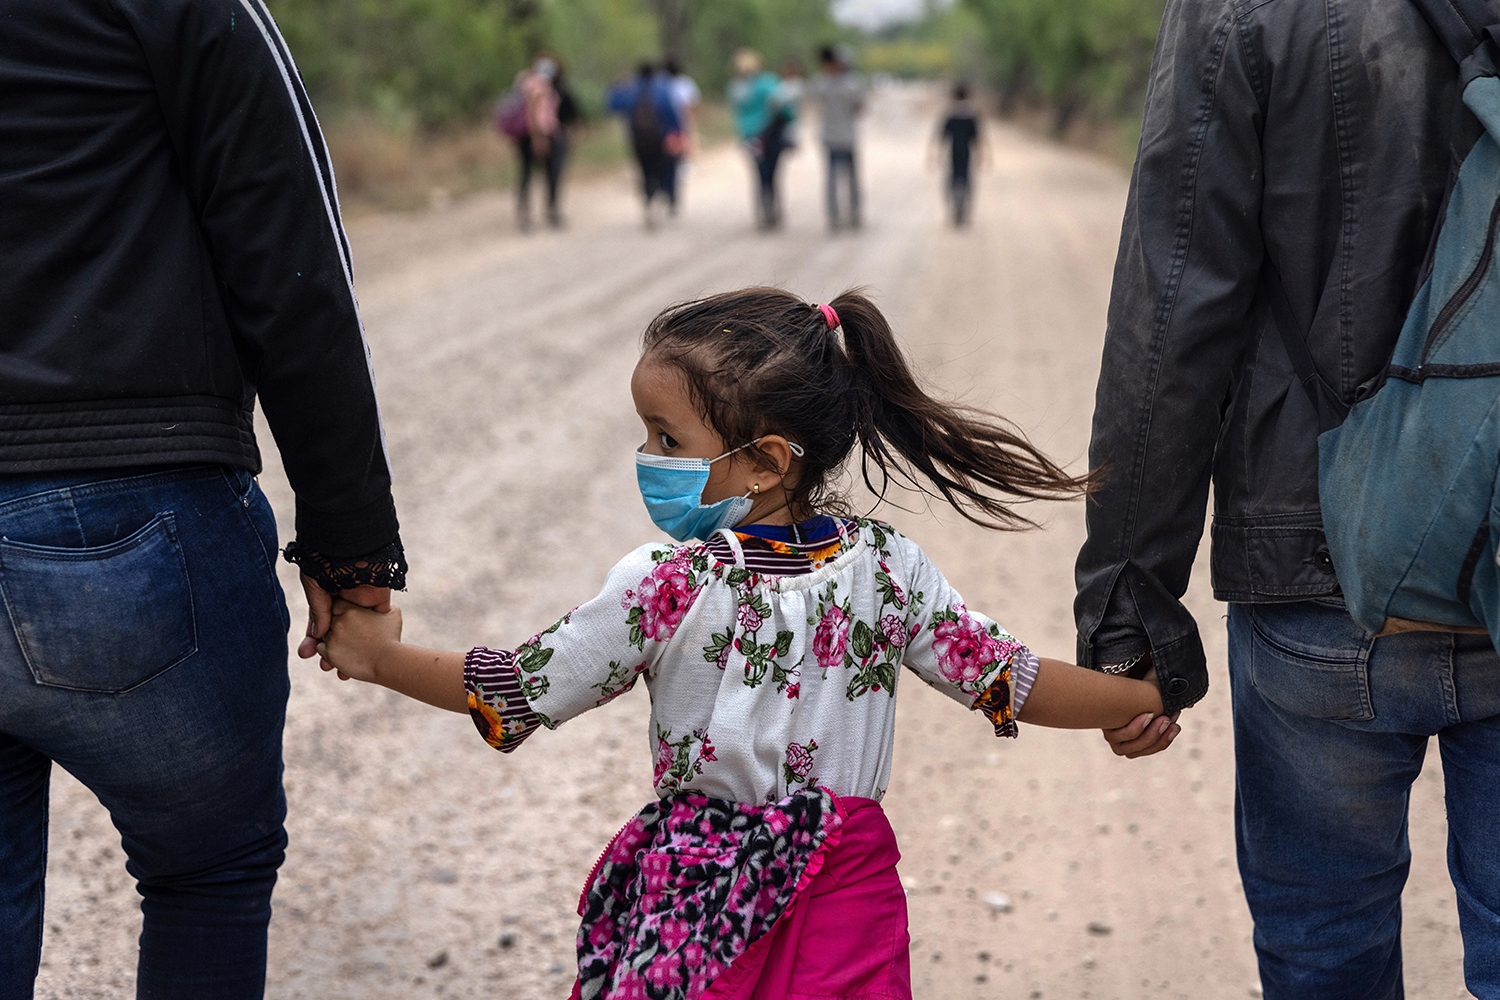 A child glances back toward the Mexican border after crossing into the United States in La Joya, Texas, on April 14. John Moore/Getty Images